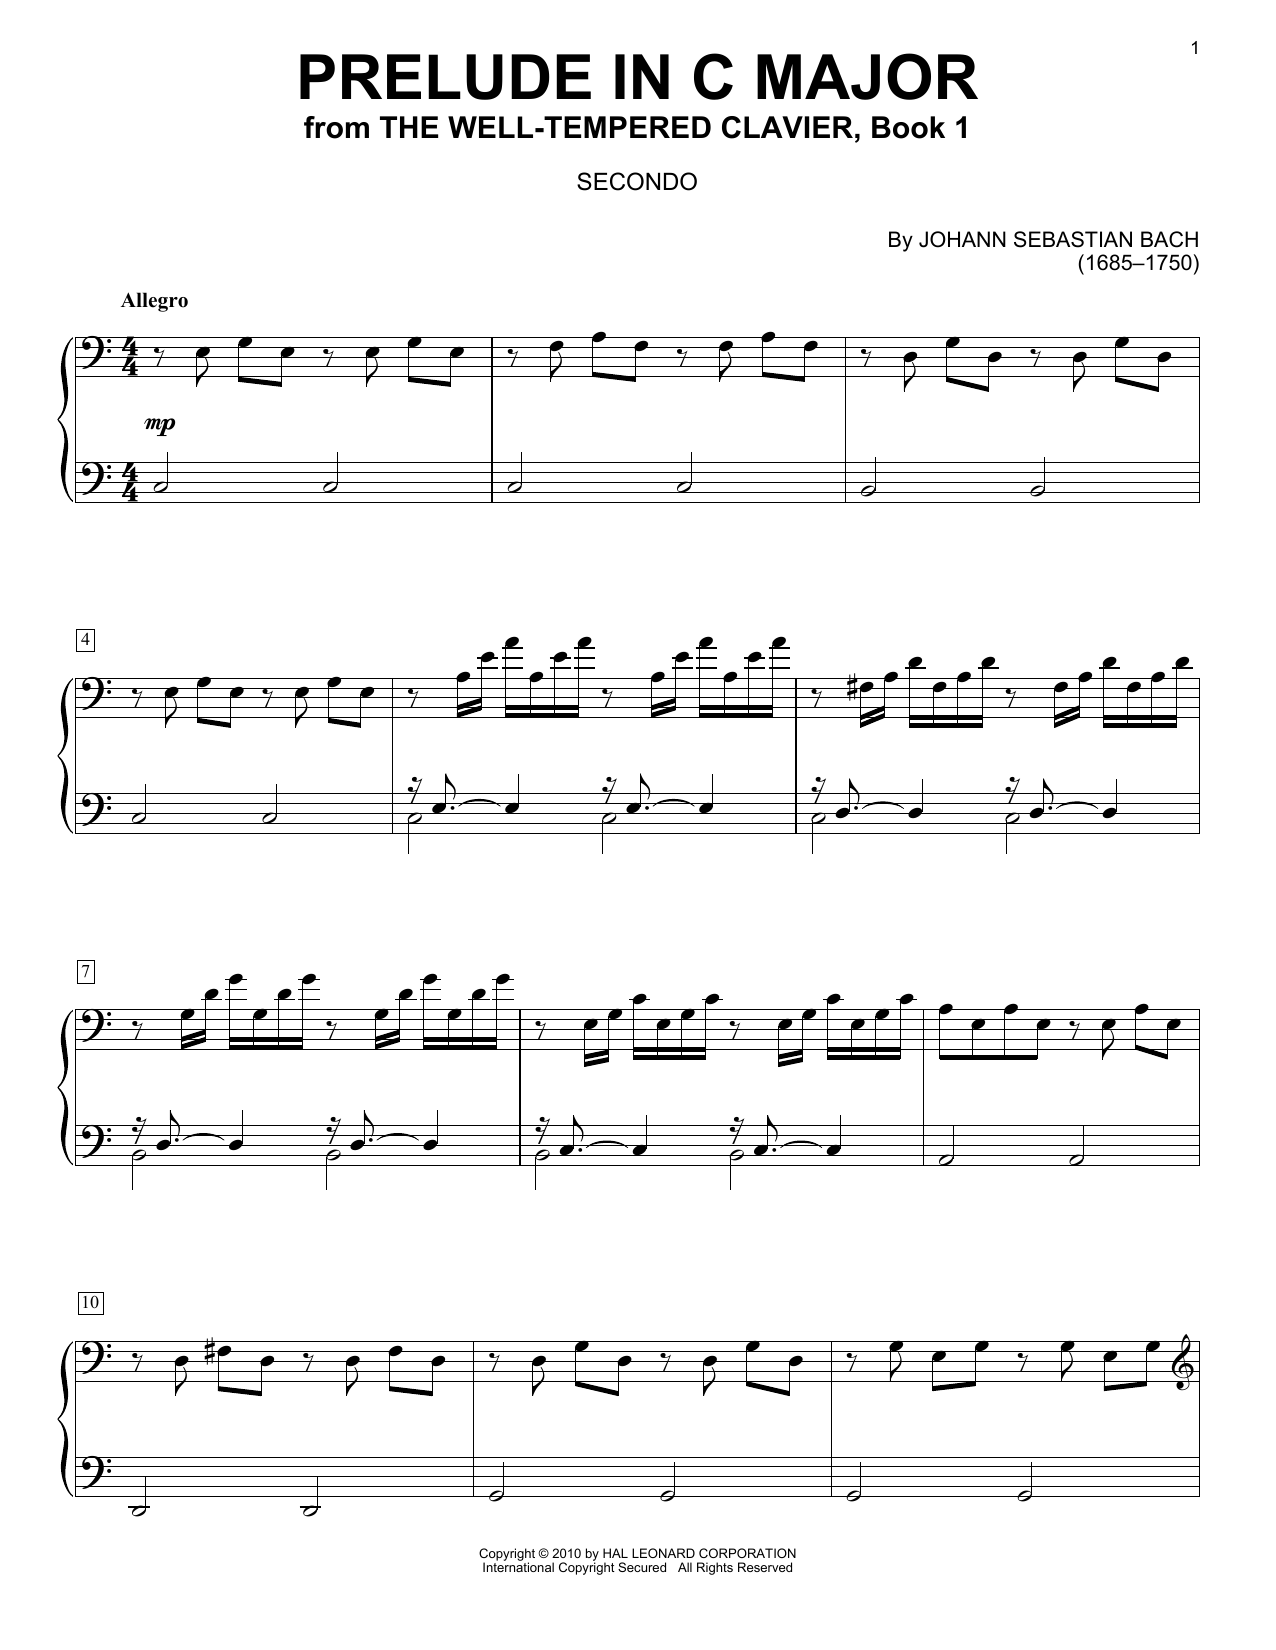 Read e-book Prelude in C Major Bach Easy Piano Sheet Music